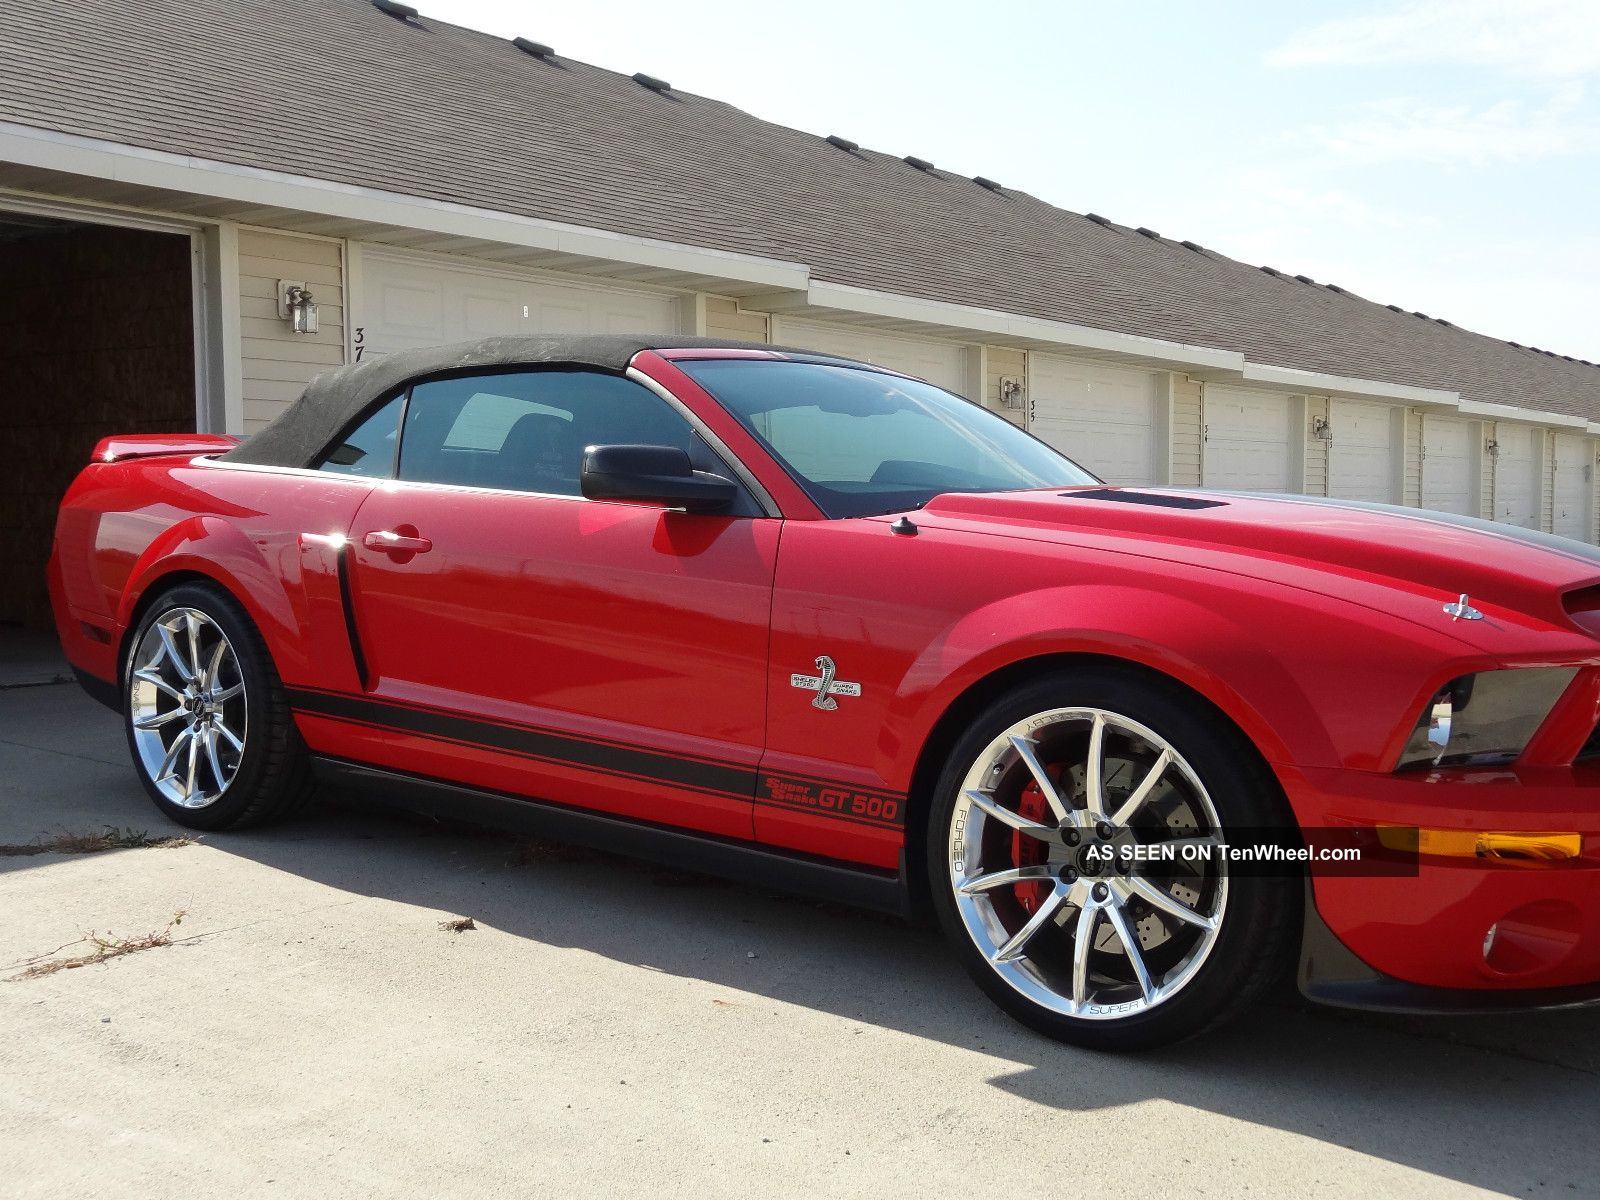 2007 ford mustang shelby gt500 convertible 2 door 5 4l 2013 Shelby GT500 Black 2014 shelby gt500 owners manual